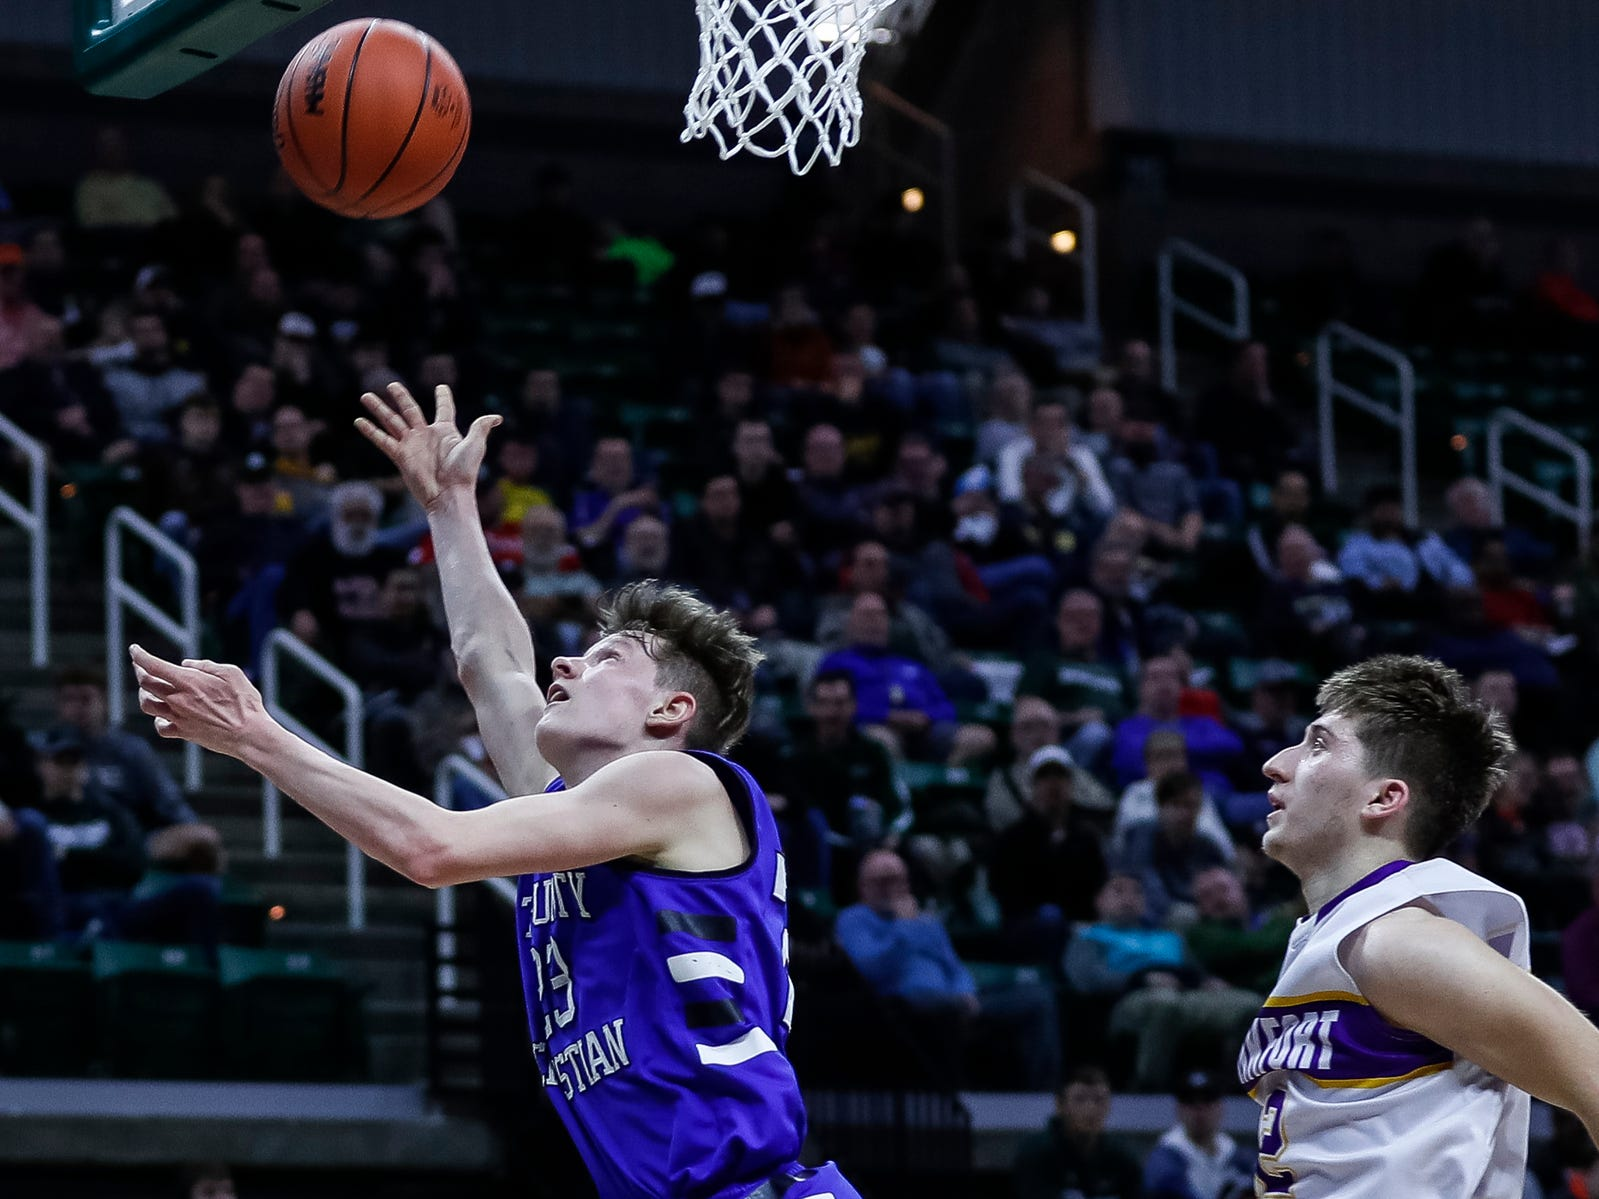 Wyoming Tri-unity Christian's Colin DeKlyen (23) makes a layup against Frankfort during the first half of MHSAA Division 4 semifinal at the Breslin Center in East Lansing, Thursday, March 14, 2019.